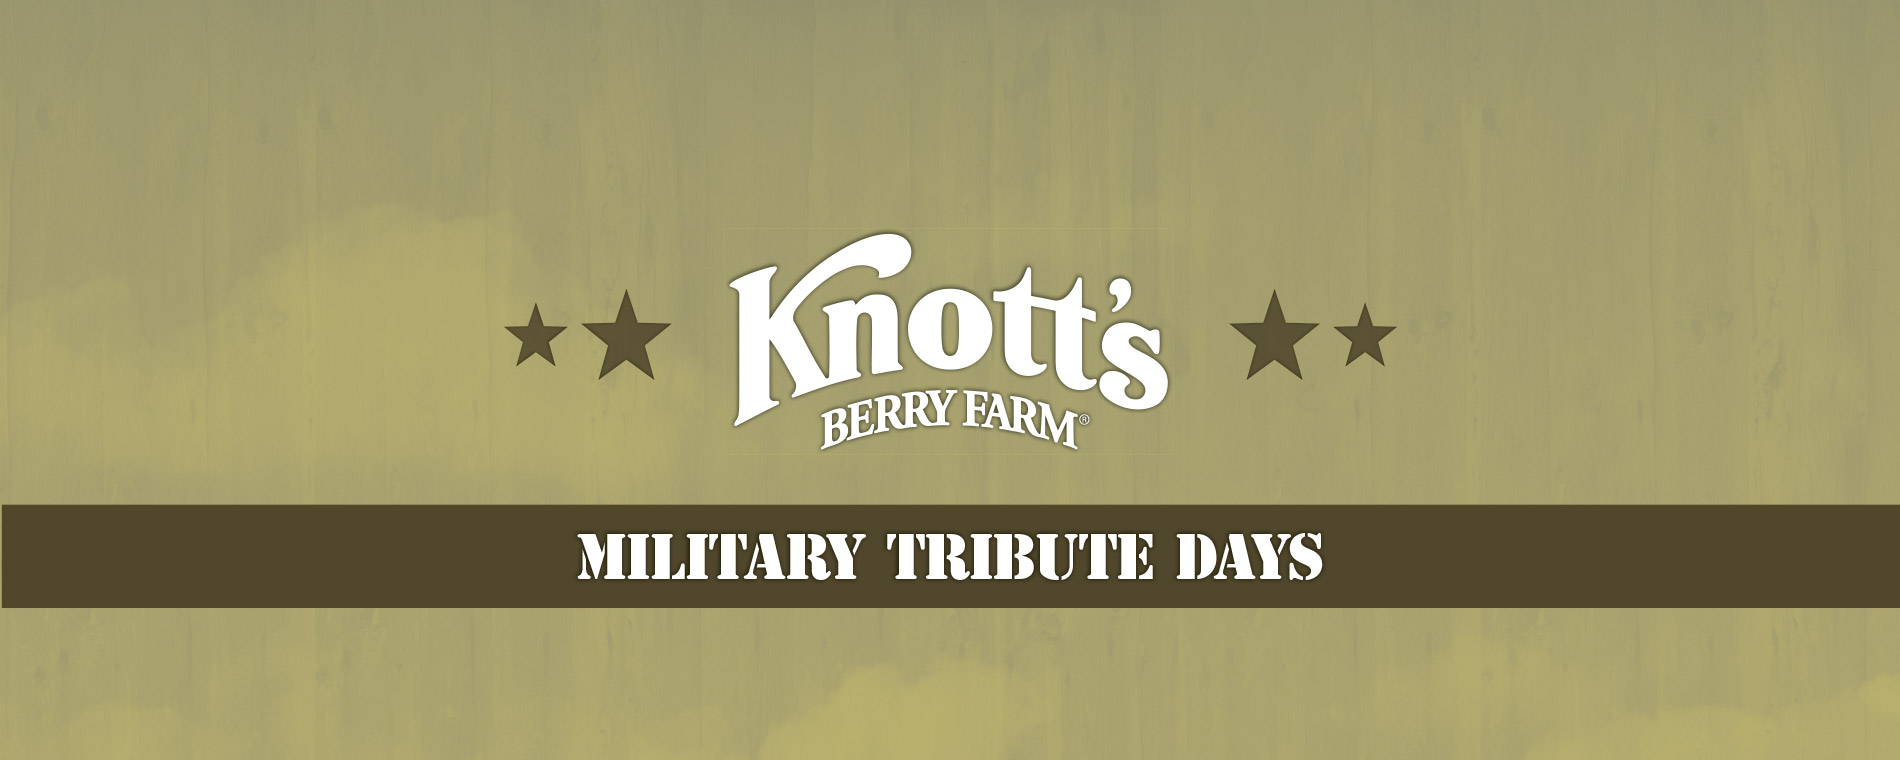 Military Tribute Days & Military Discount Tickets at Knott's Berry Farm